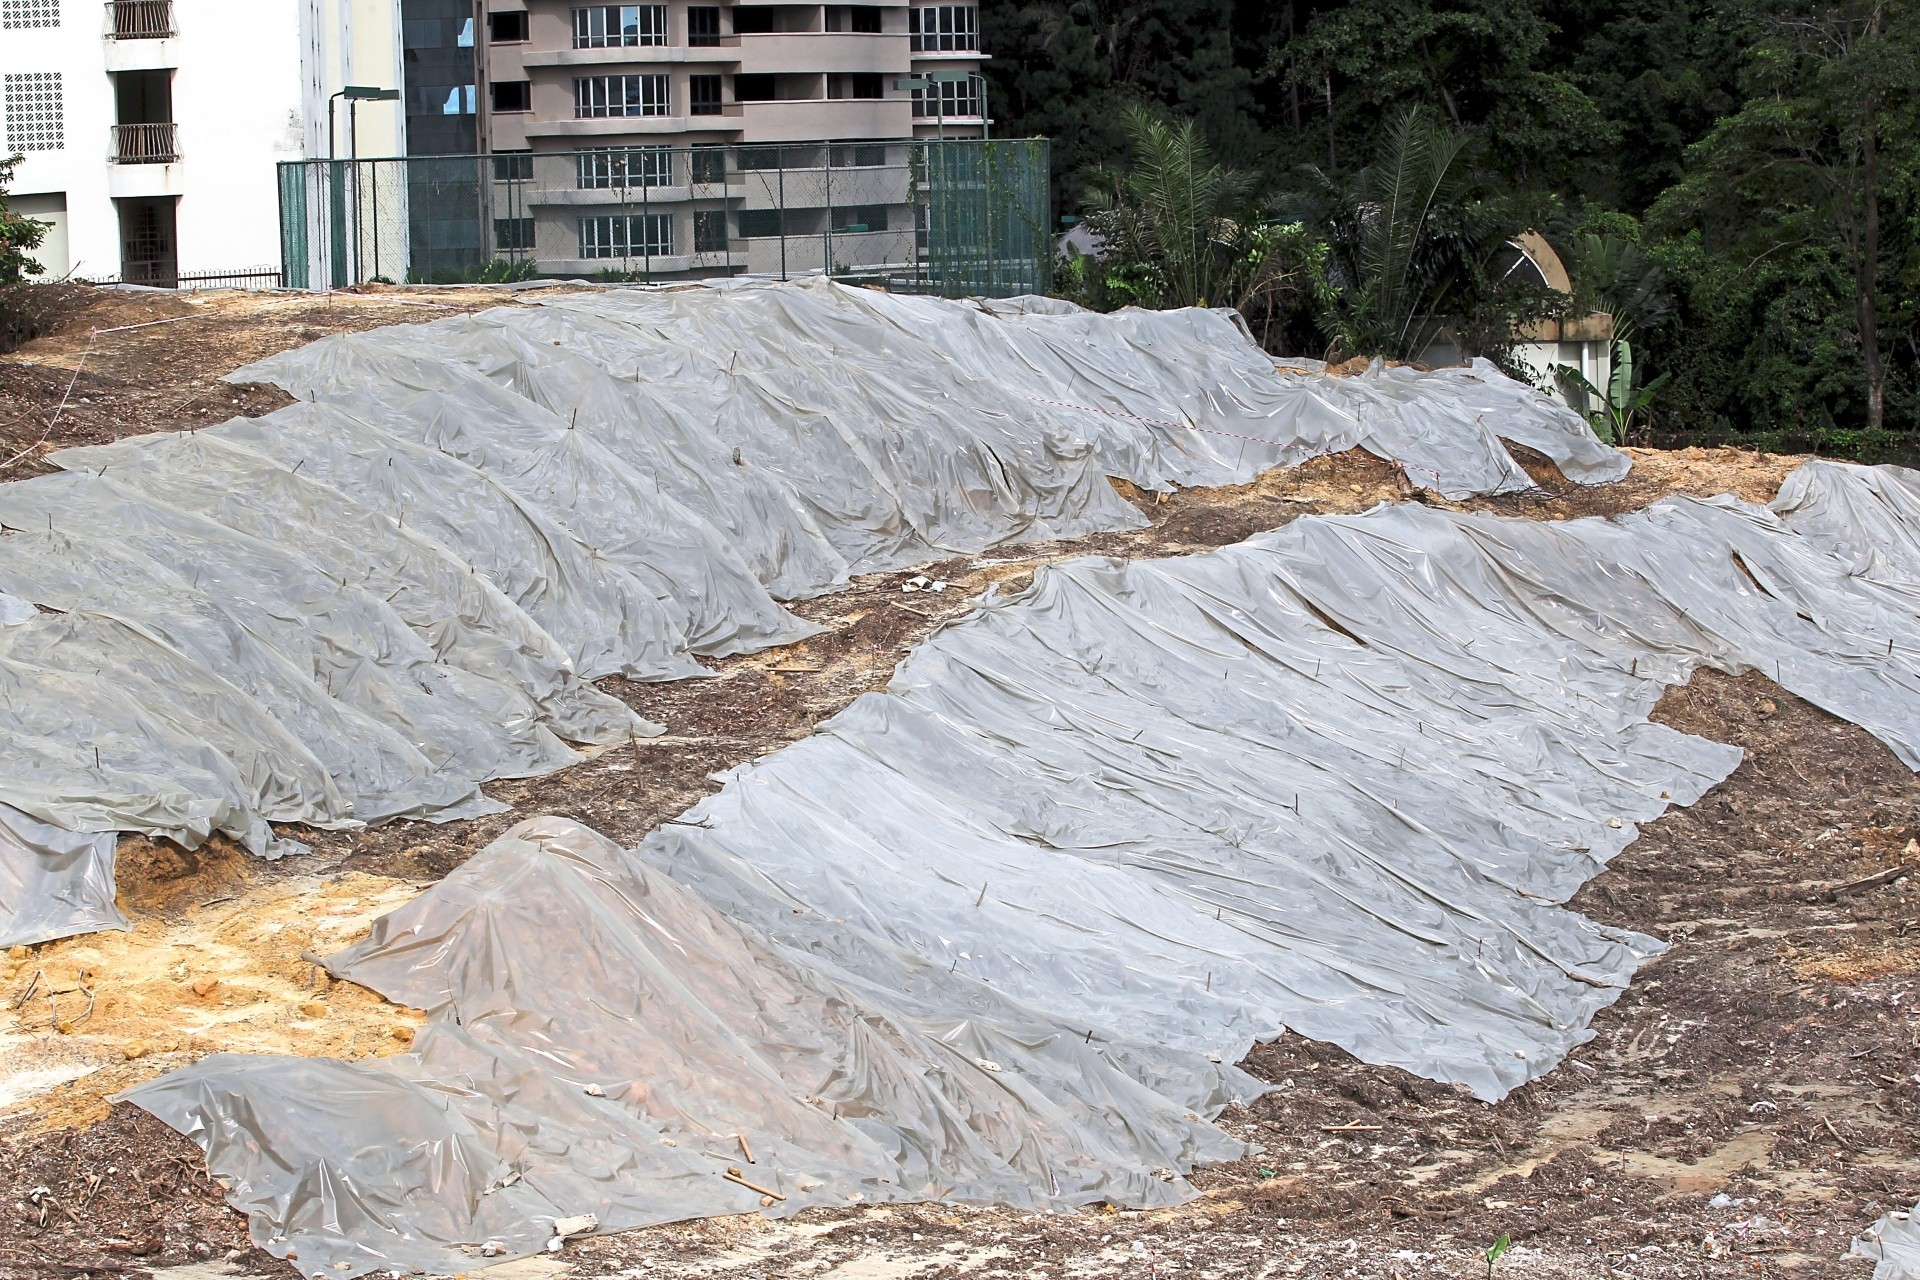 The company is among the biggest manufacturers for erosion control products in Asia, providing slope stabilisation solutions to prevent erosion.